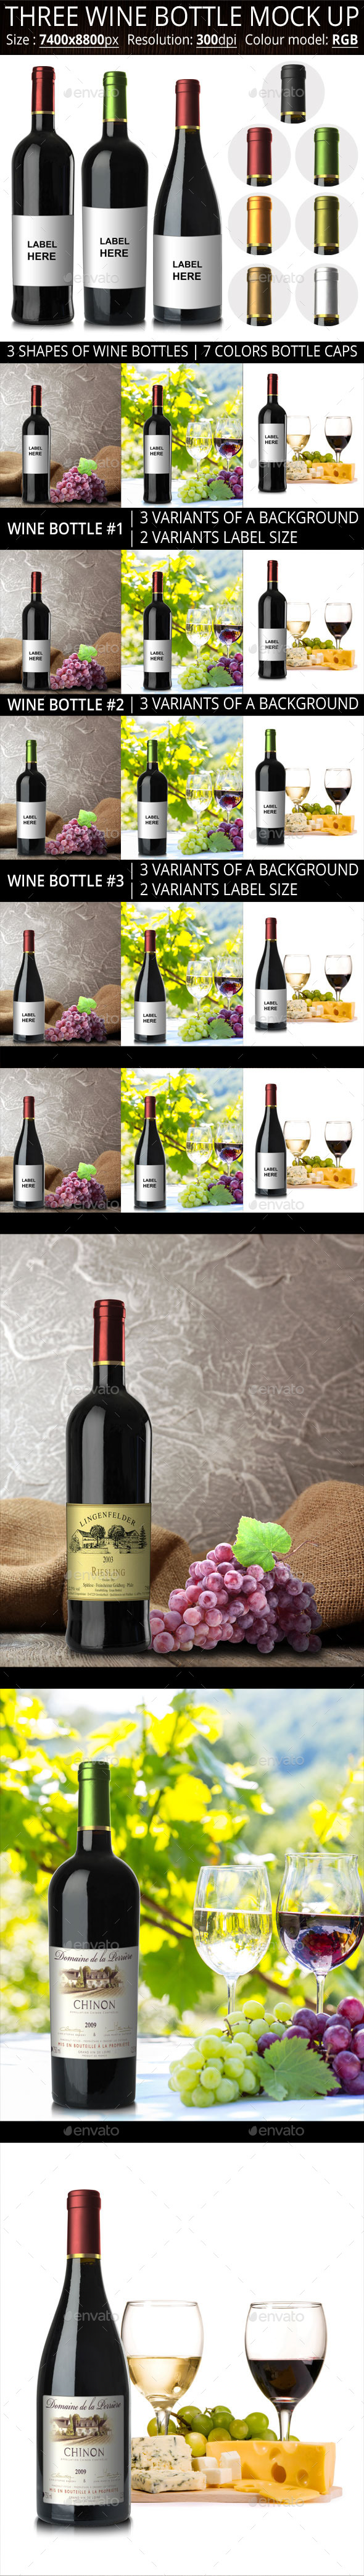 GraphicRiver Three Wine Bottle Mock Up 11300353